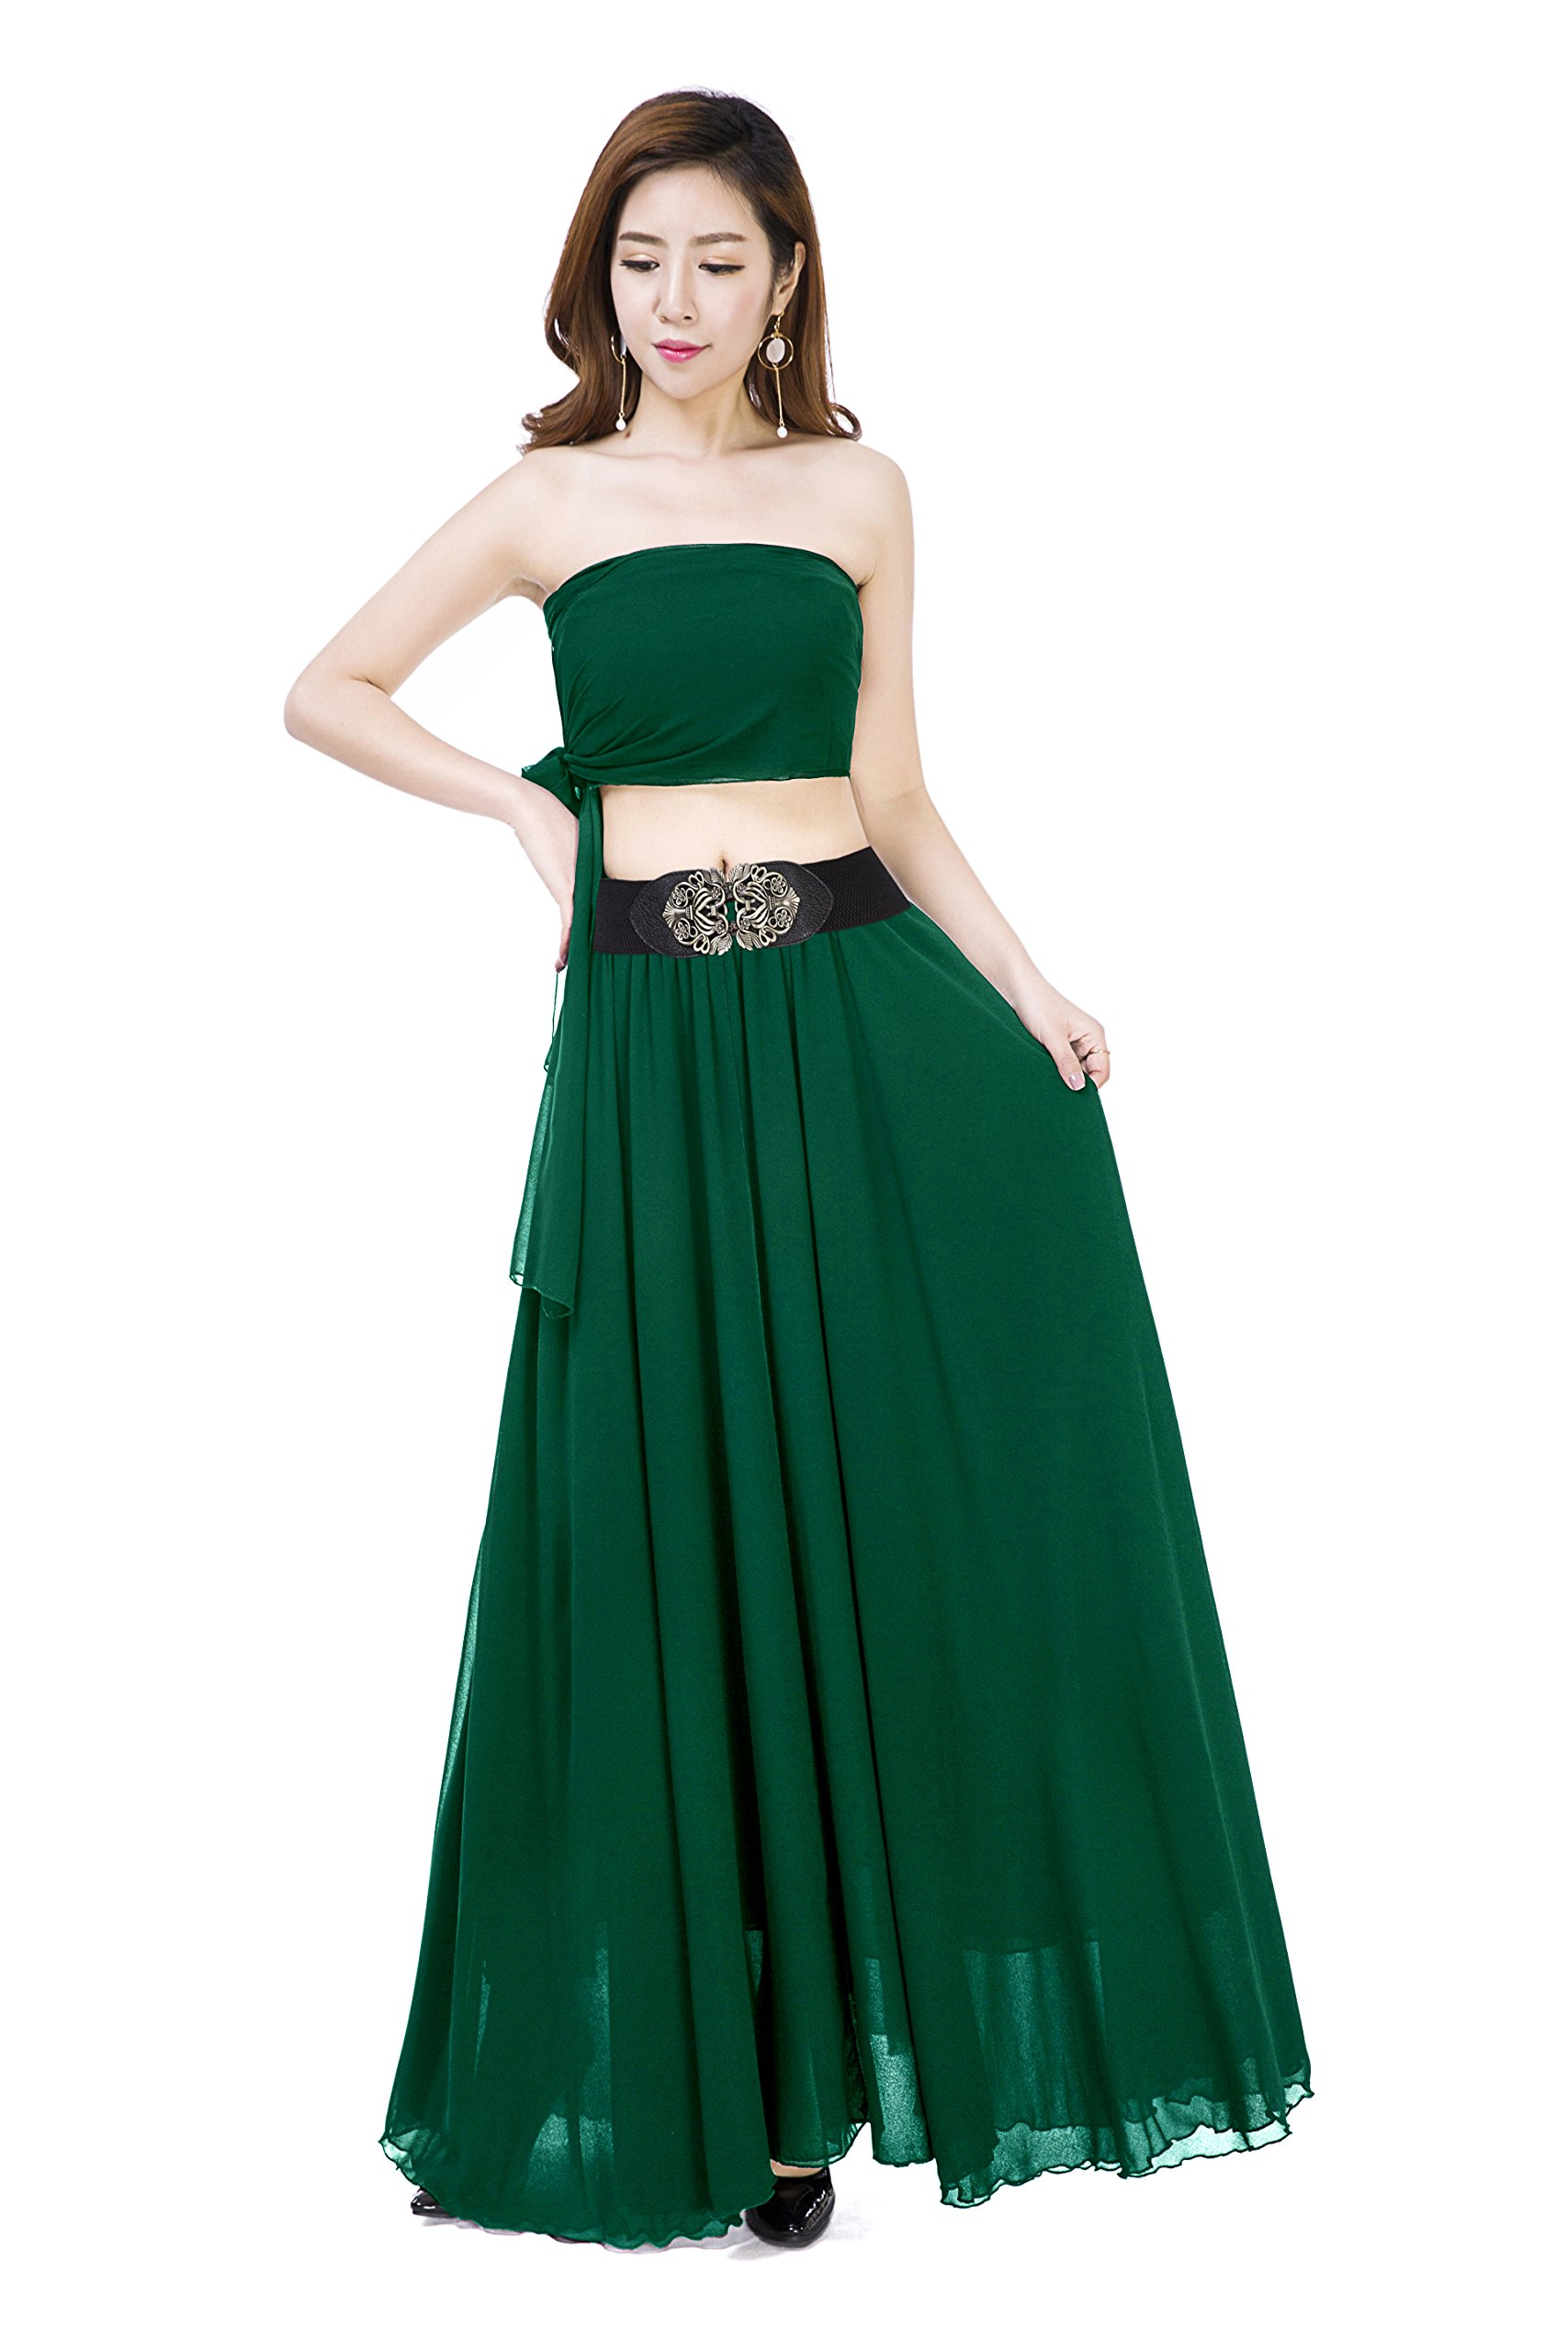 Sinreefsy Women Summer Chiffon High Waist Pleated Big Hem Full/Ankle Length Beach Maxi Skirt(Medium/Jade Green)